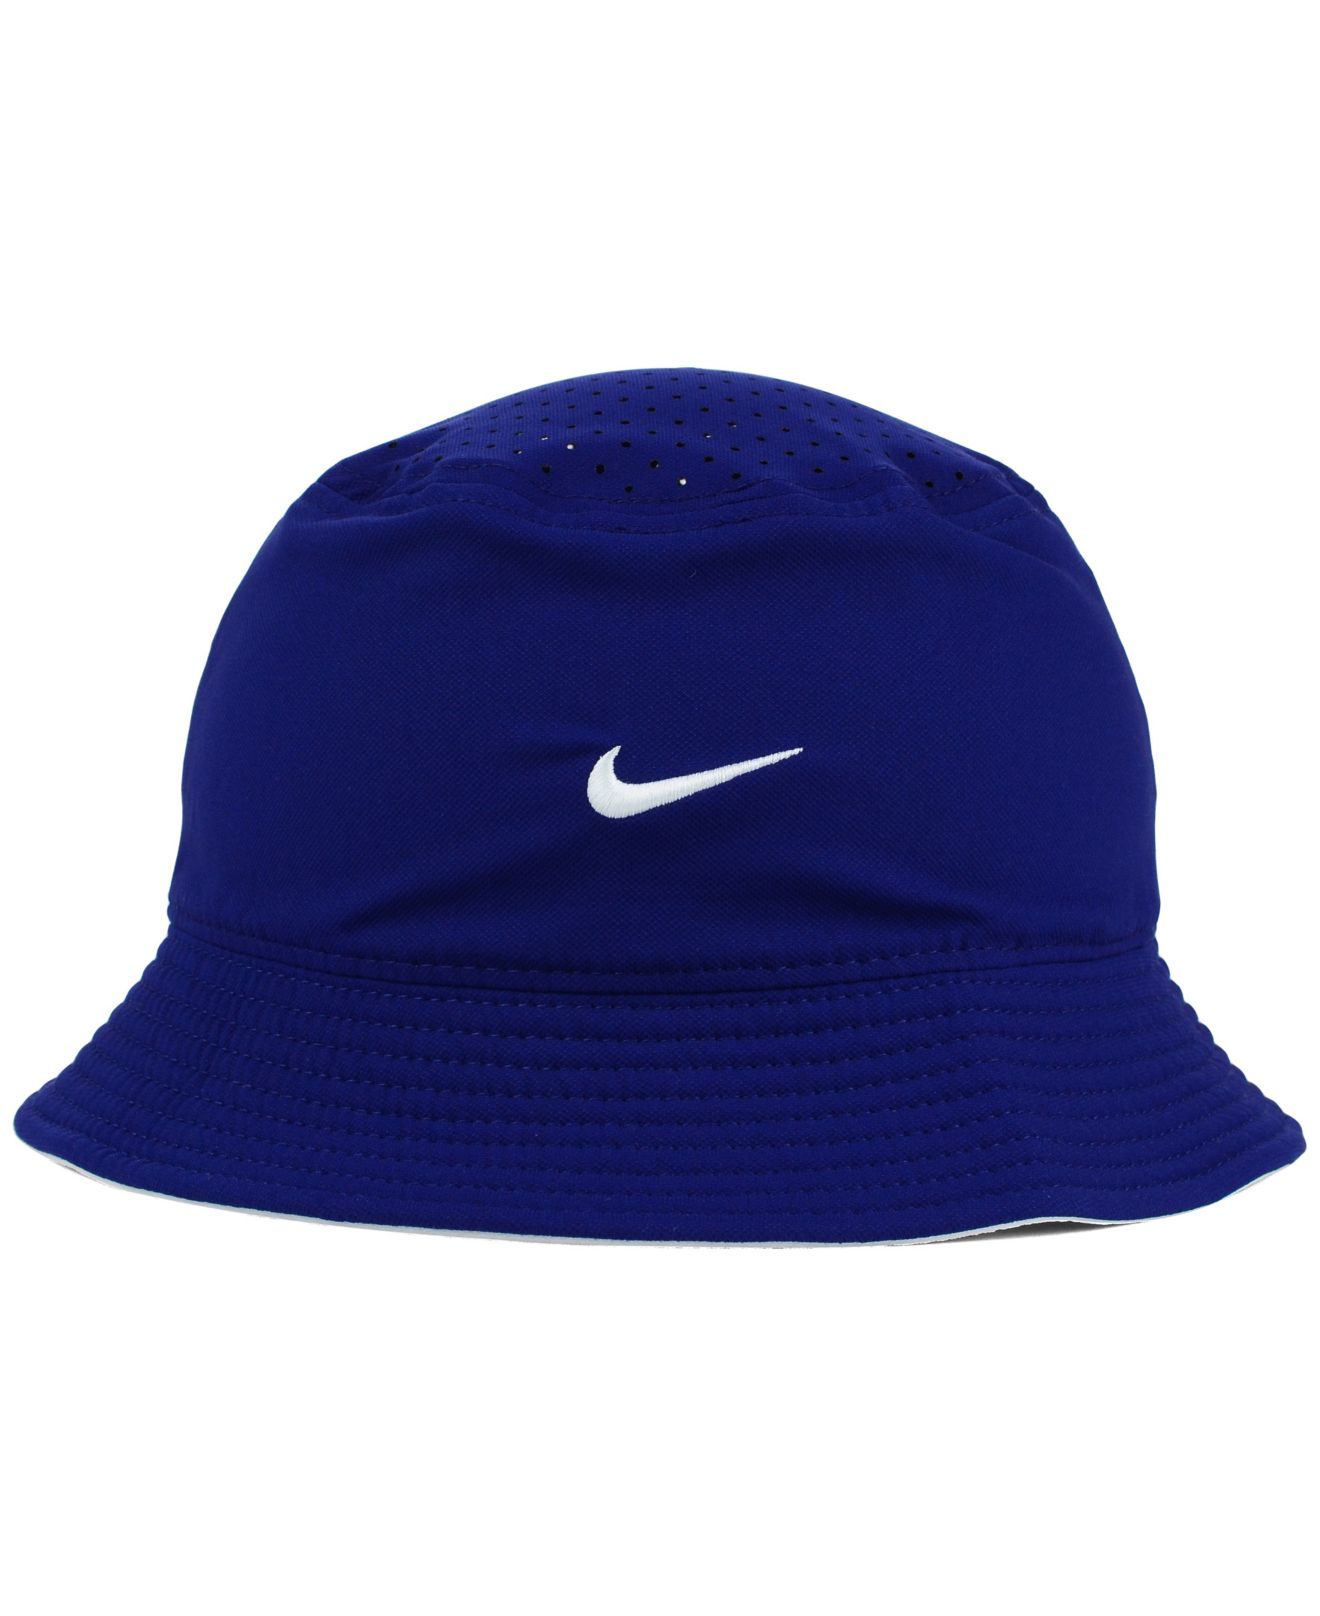 ... Lyst - Nike Los Angeles Dodgers Vapor Dri-fit Bucket Hat in Blue for  Men ... 845ad652e32